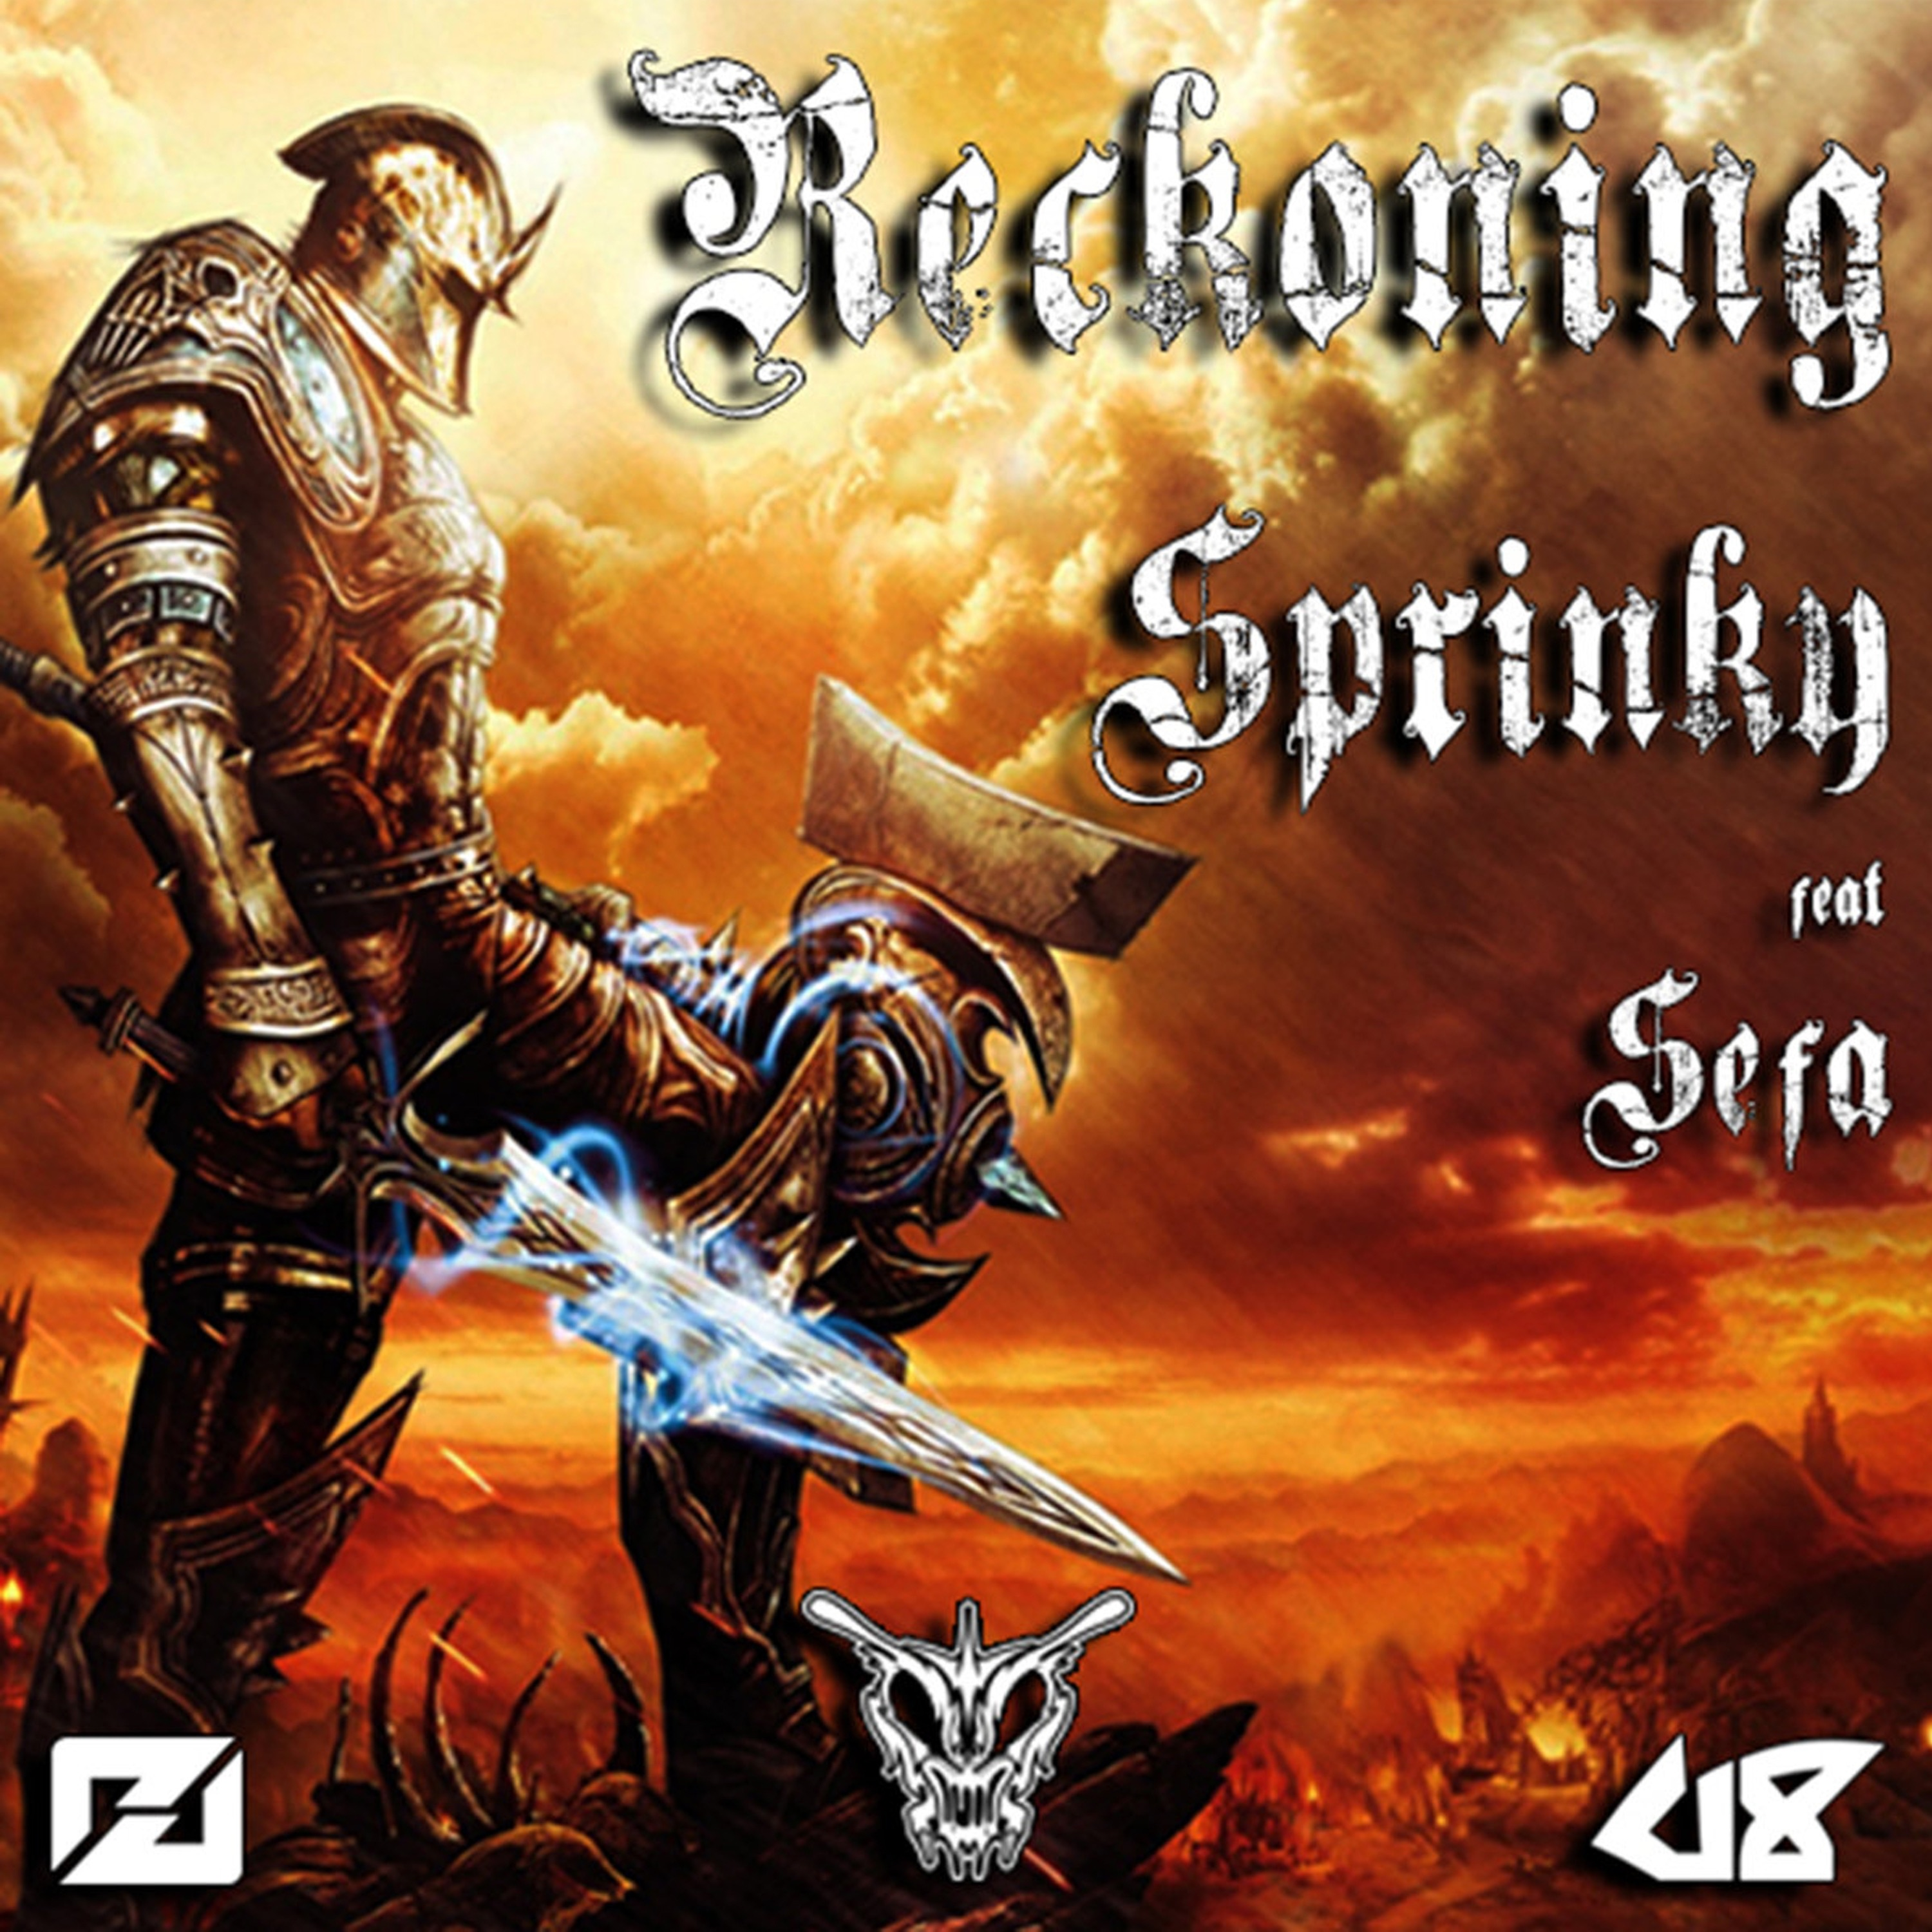 Reckoning (feat. Sefa) - EP